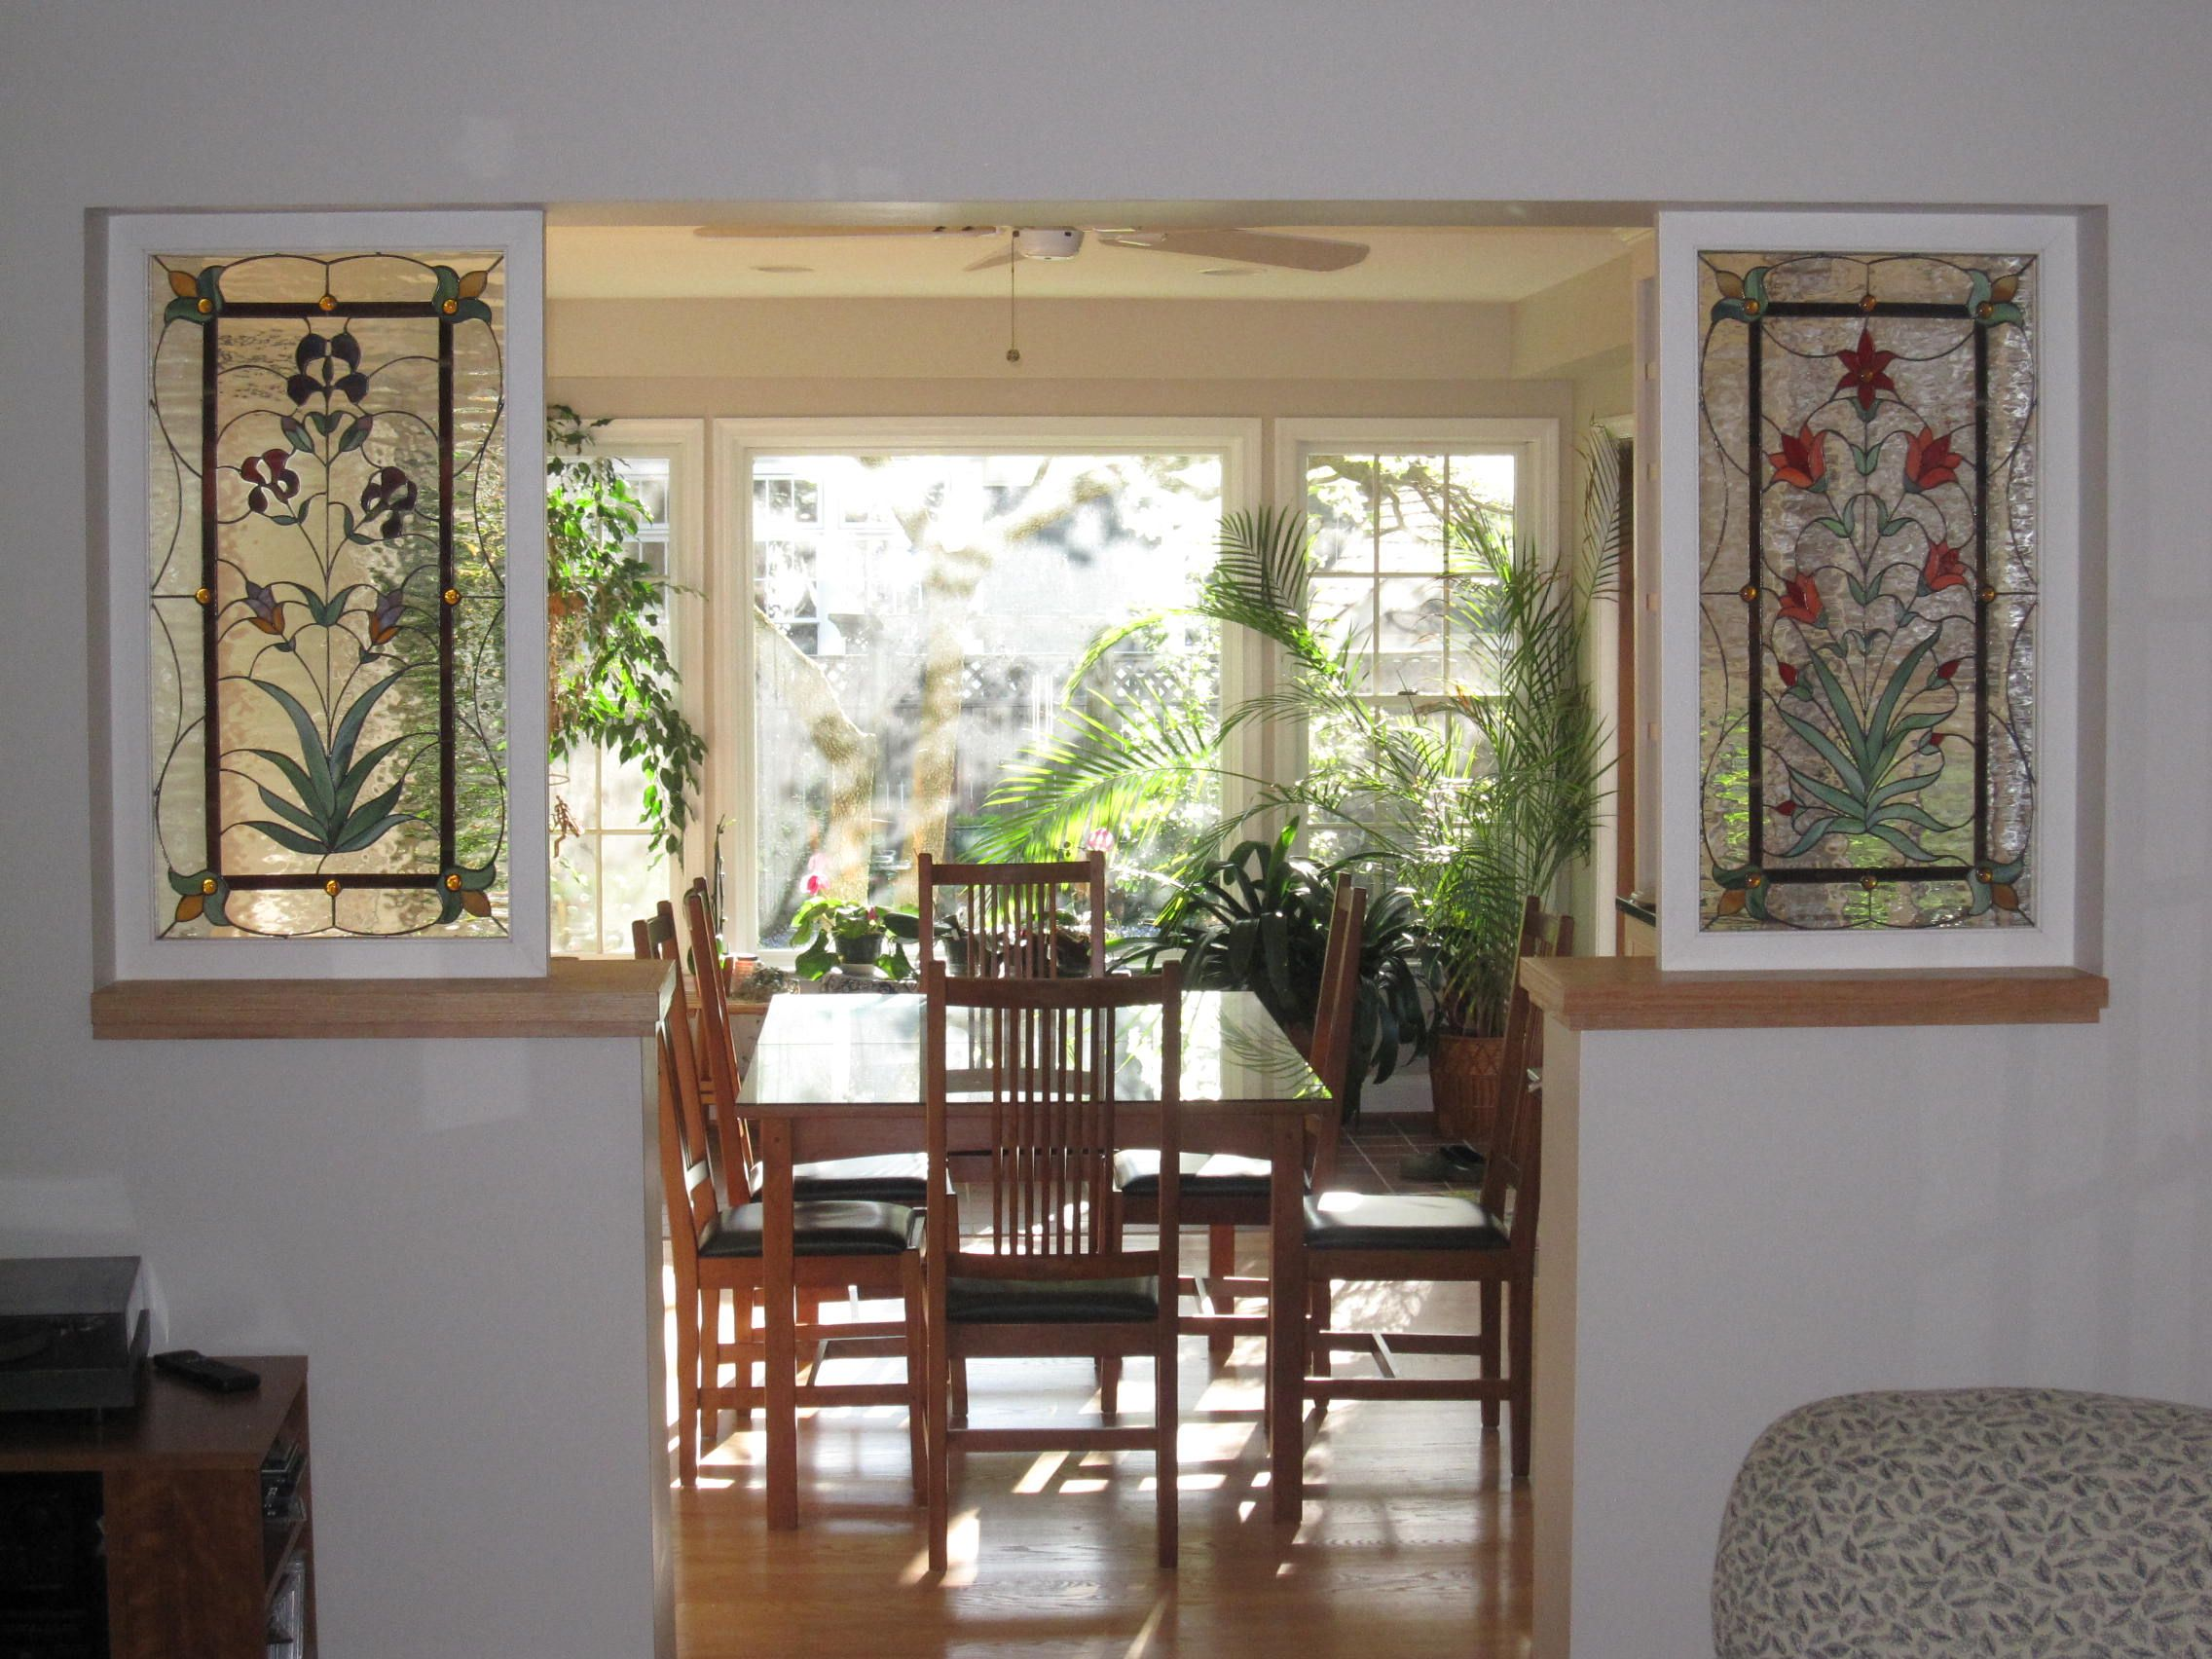 interior stained glass window | Stained glass Interior room dividers ...